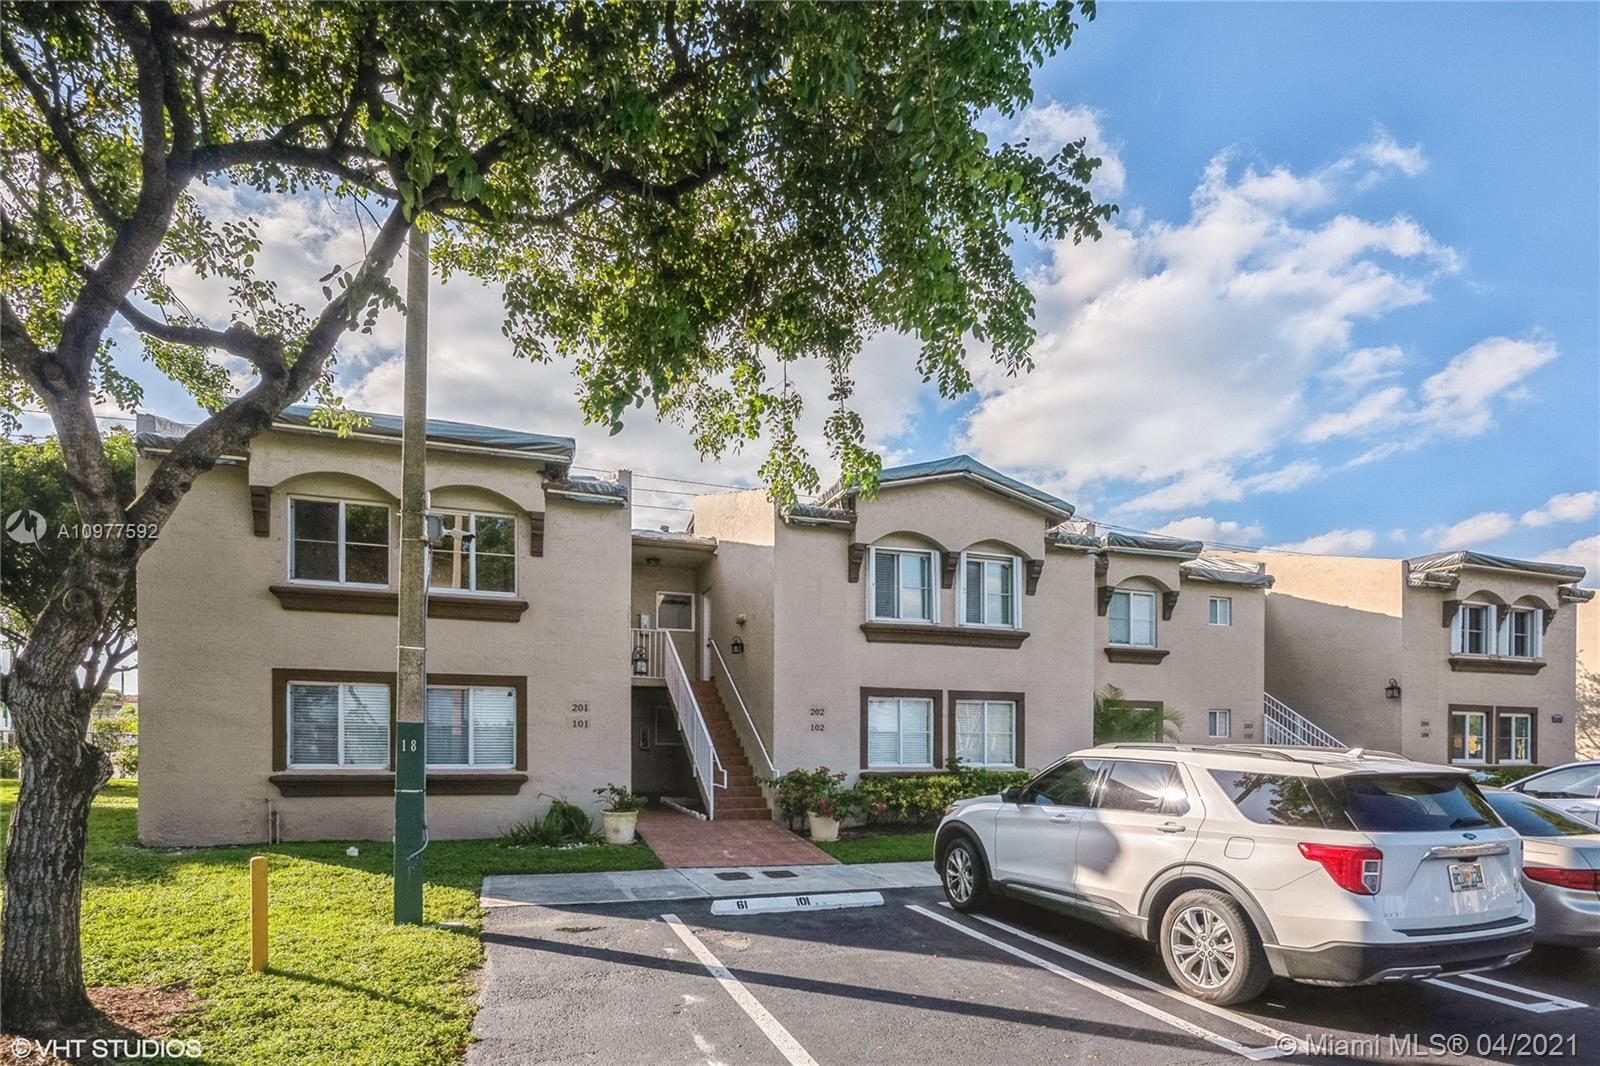 Details for 15761 137th Ave  201, Miami, FL 33177